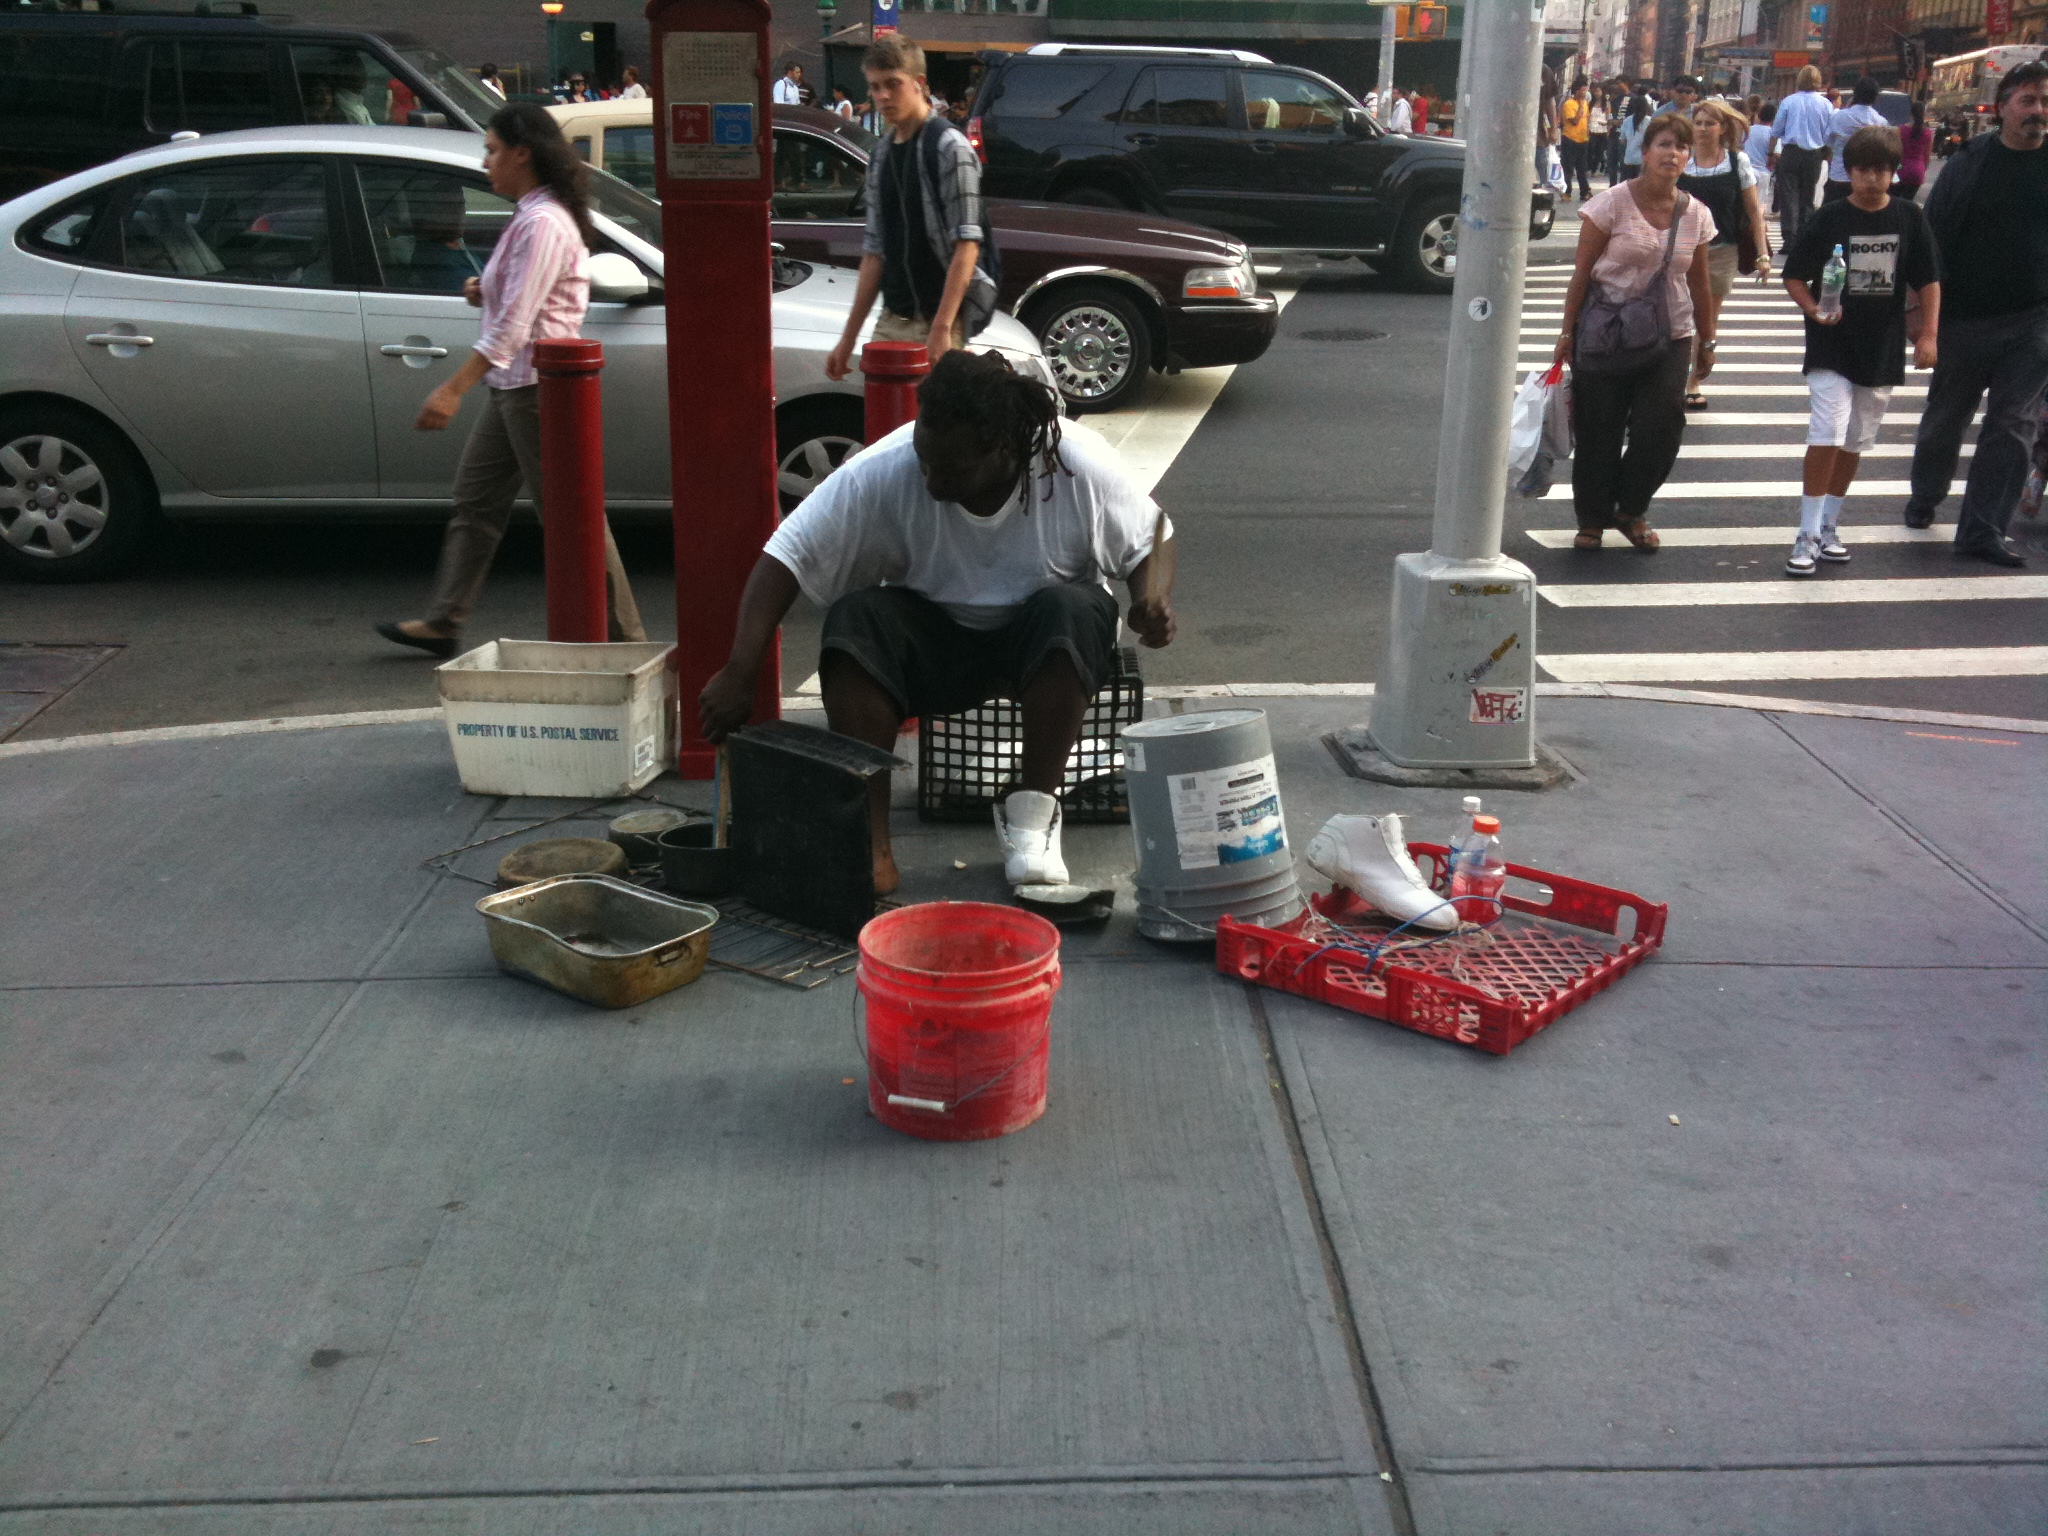 Jammin' on the streets of NYC